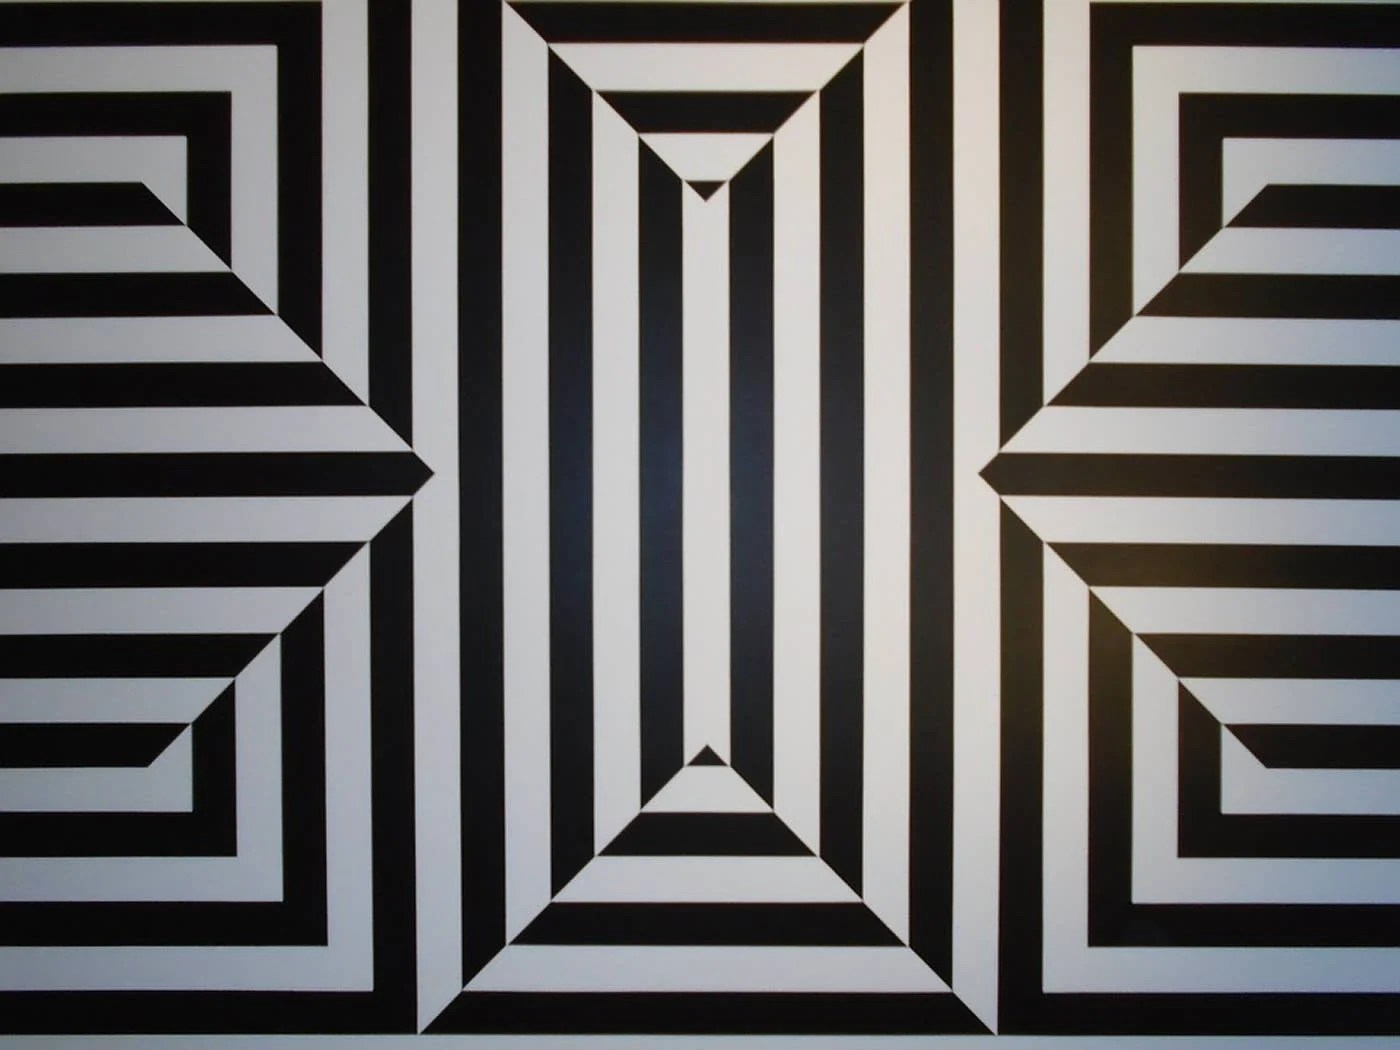 Three Visual Illusions That Reveal The Hidden Workings Of The Brain